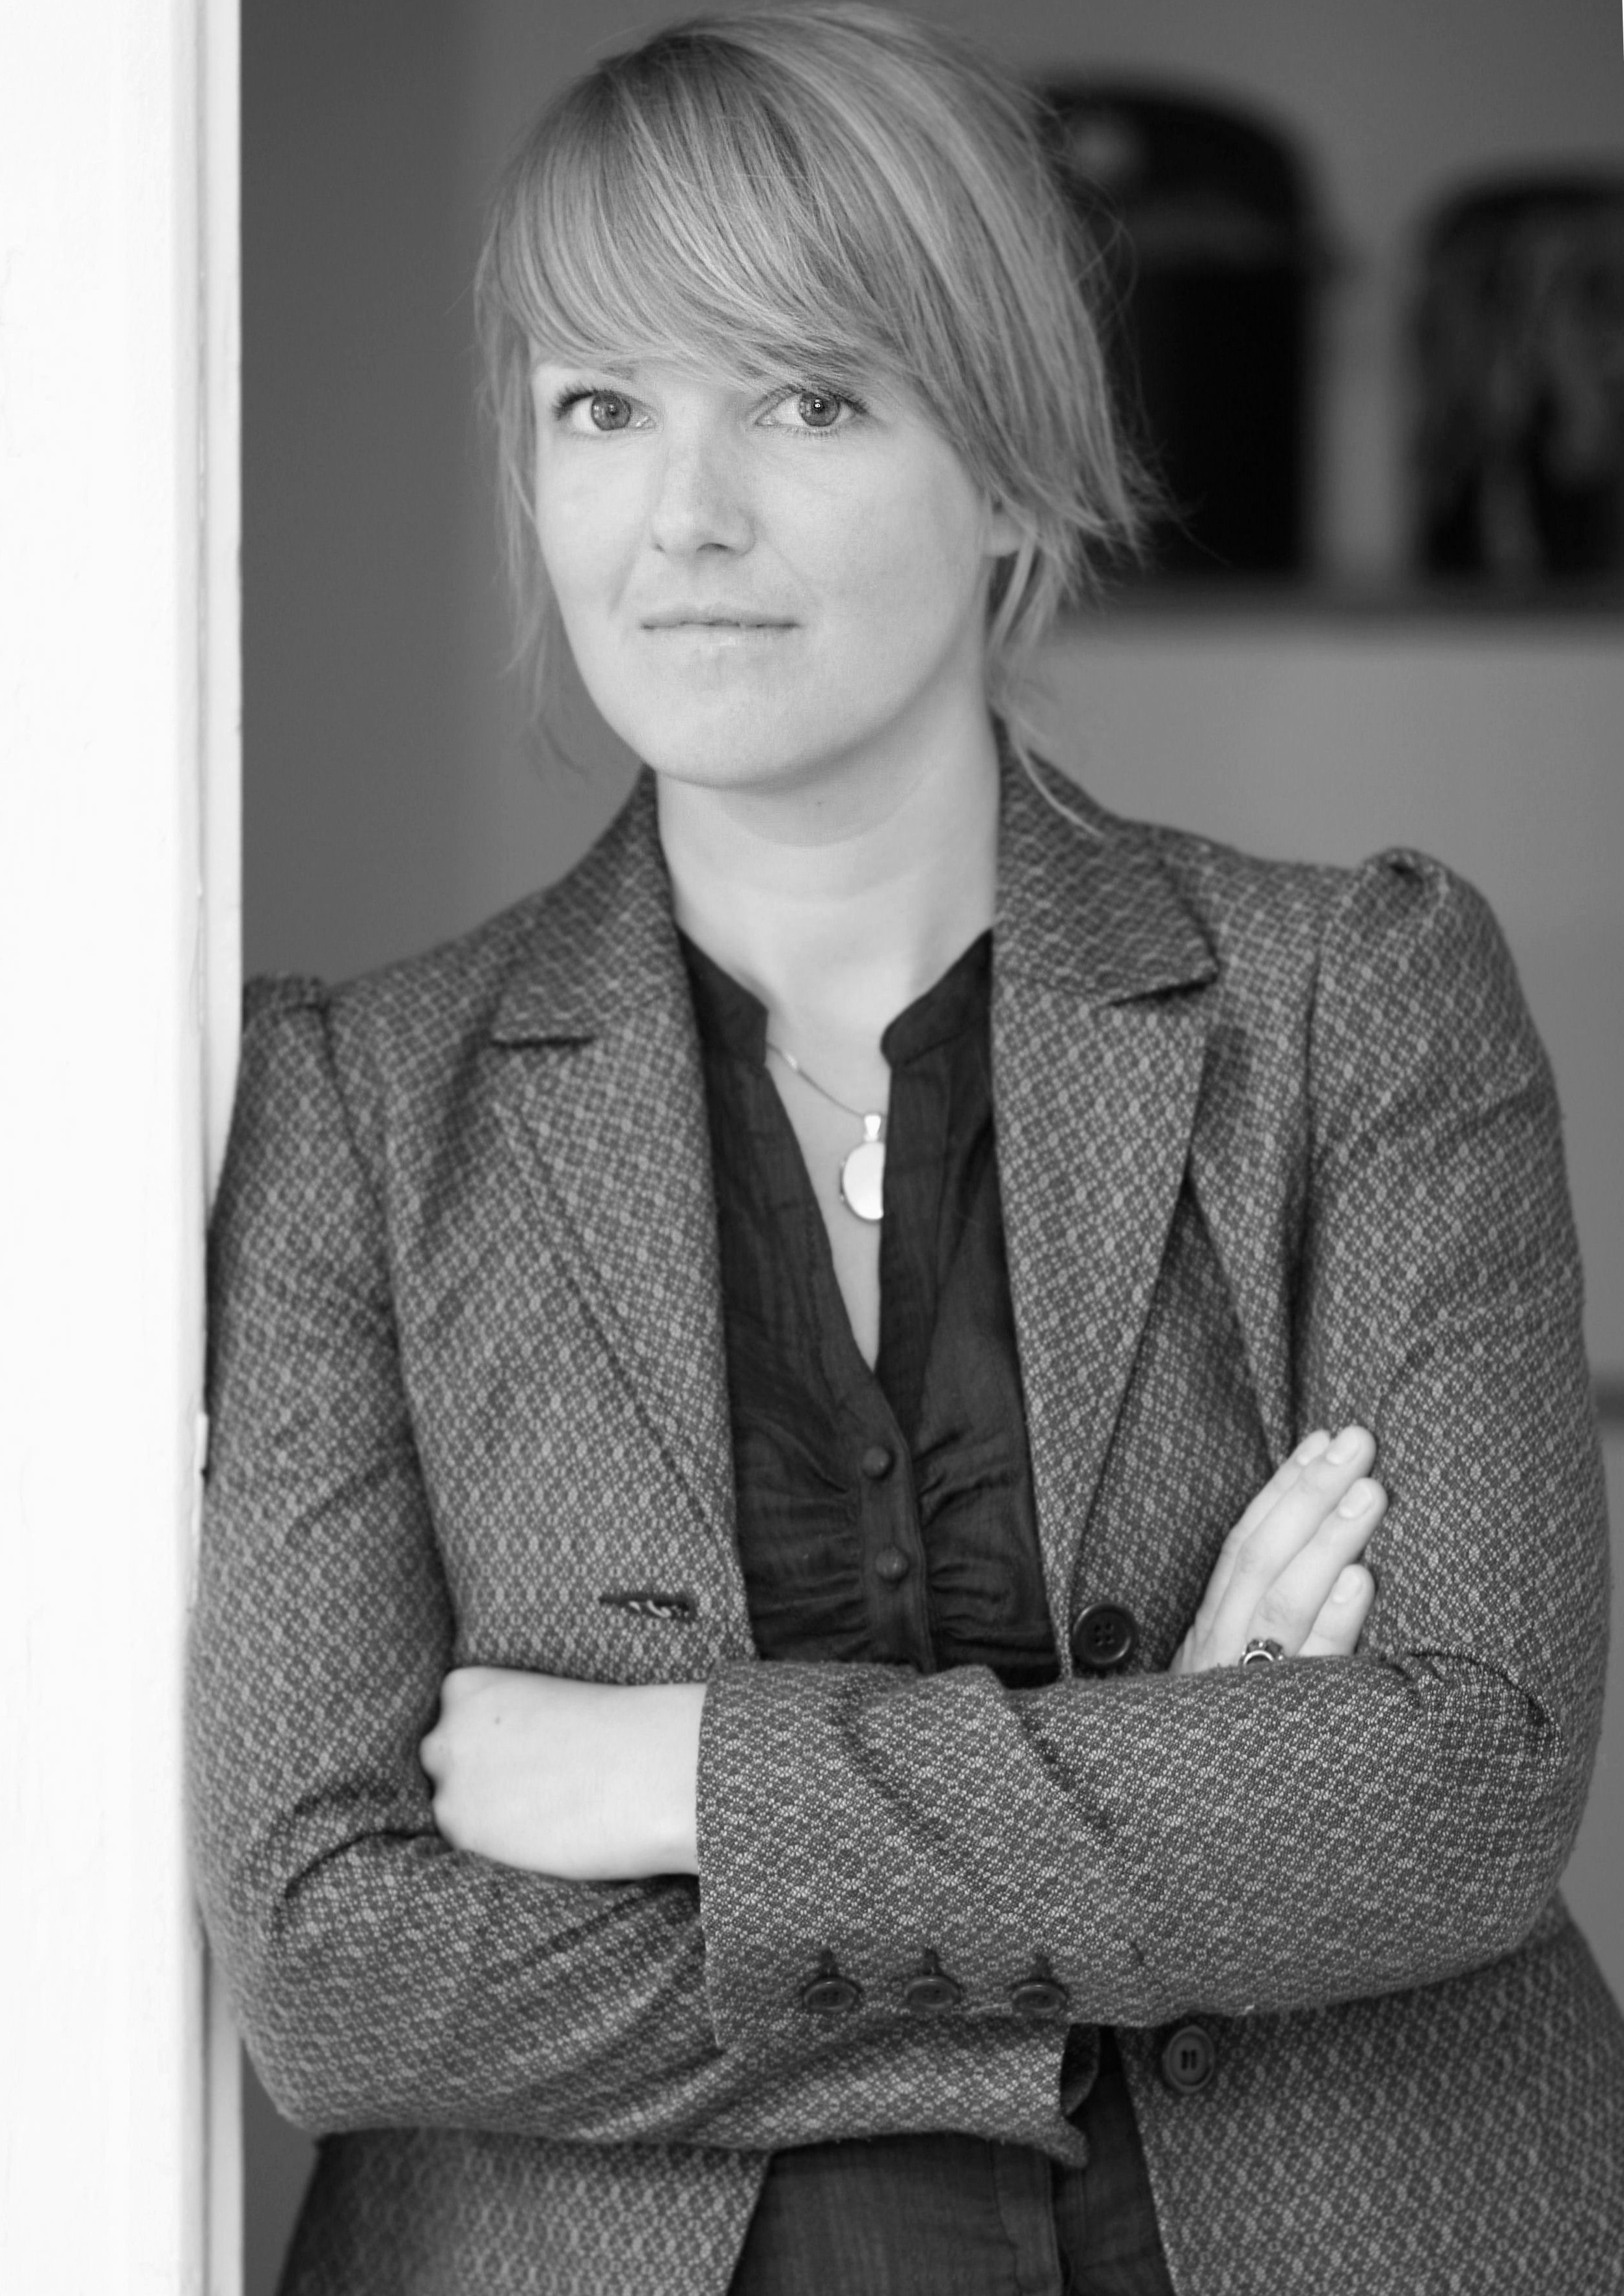 Kerstin Poehls - is conducting post-doc research at the Department of European Ethnology at Humboldt University in Berlin. She completed her PhD in Social Anthropology/European Ethnology in 2007 on everyday and tacit modes of Europeanization within an elite milieu (published as Europa backstage, 2009). As member of the joint research project Exhibiting Europe (funded by the Norwegian Research Council) she investigated the Politics of Display: Migration, Mobilities, and the Borders of 'Europe'.